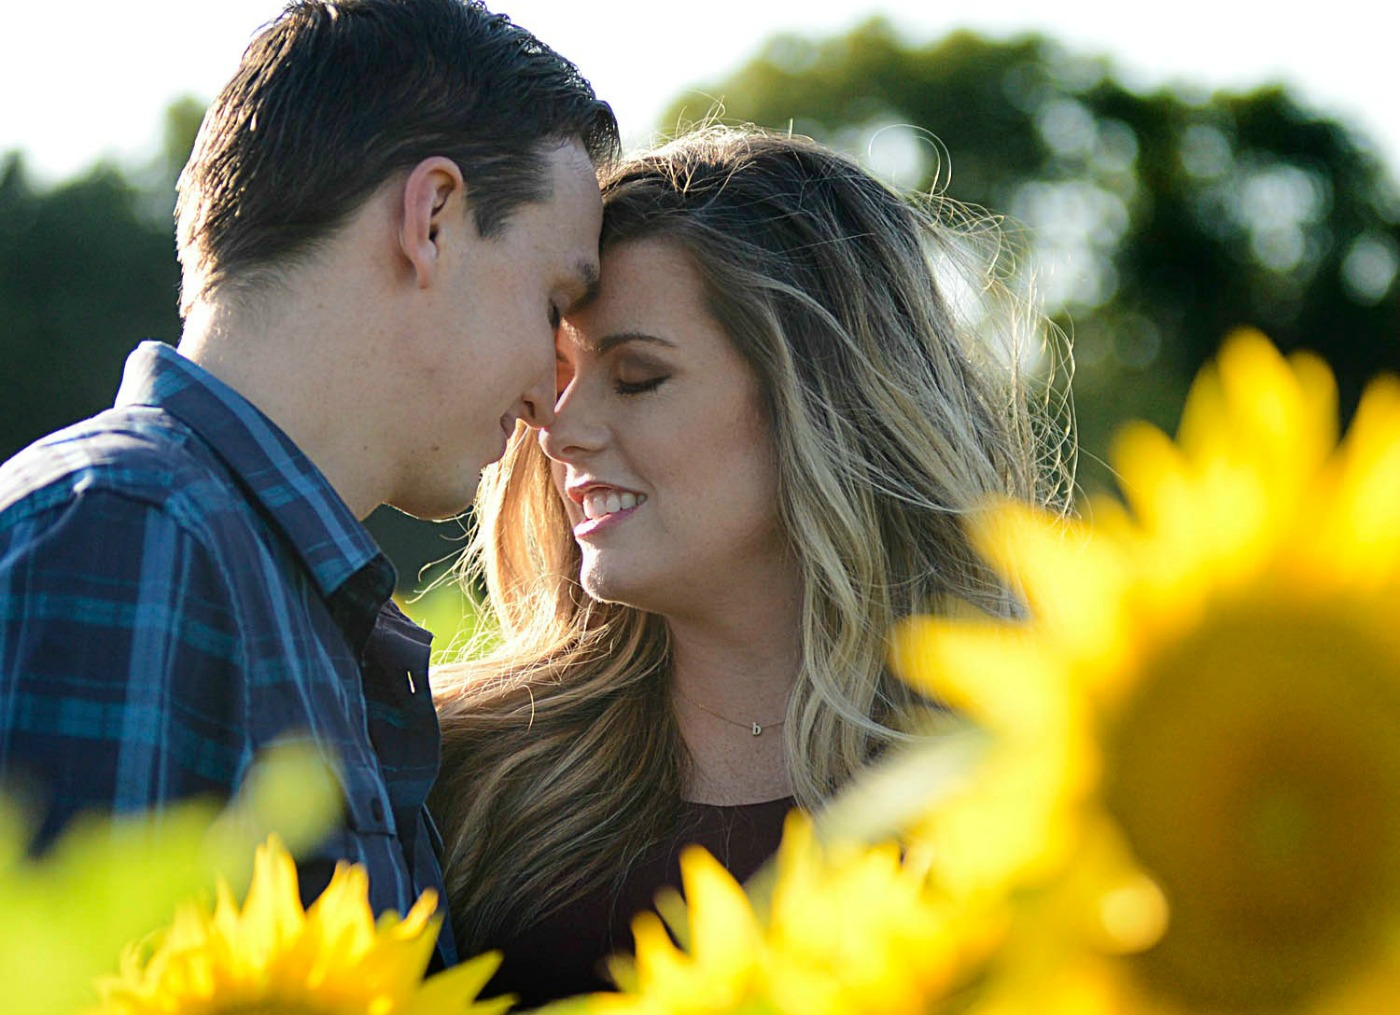 Fall Maternity shoot in a sunflower field in Kansas - Grinter Farms